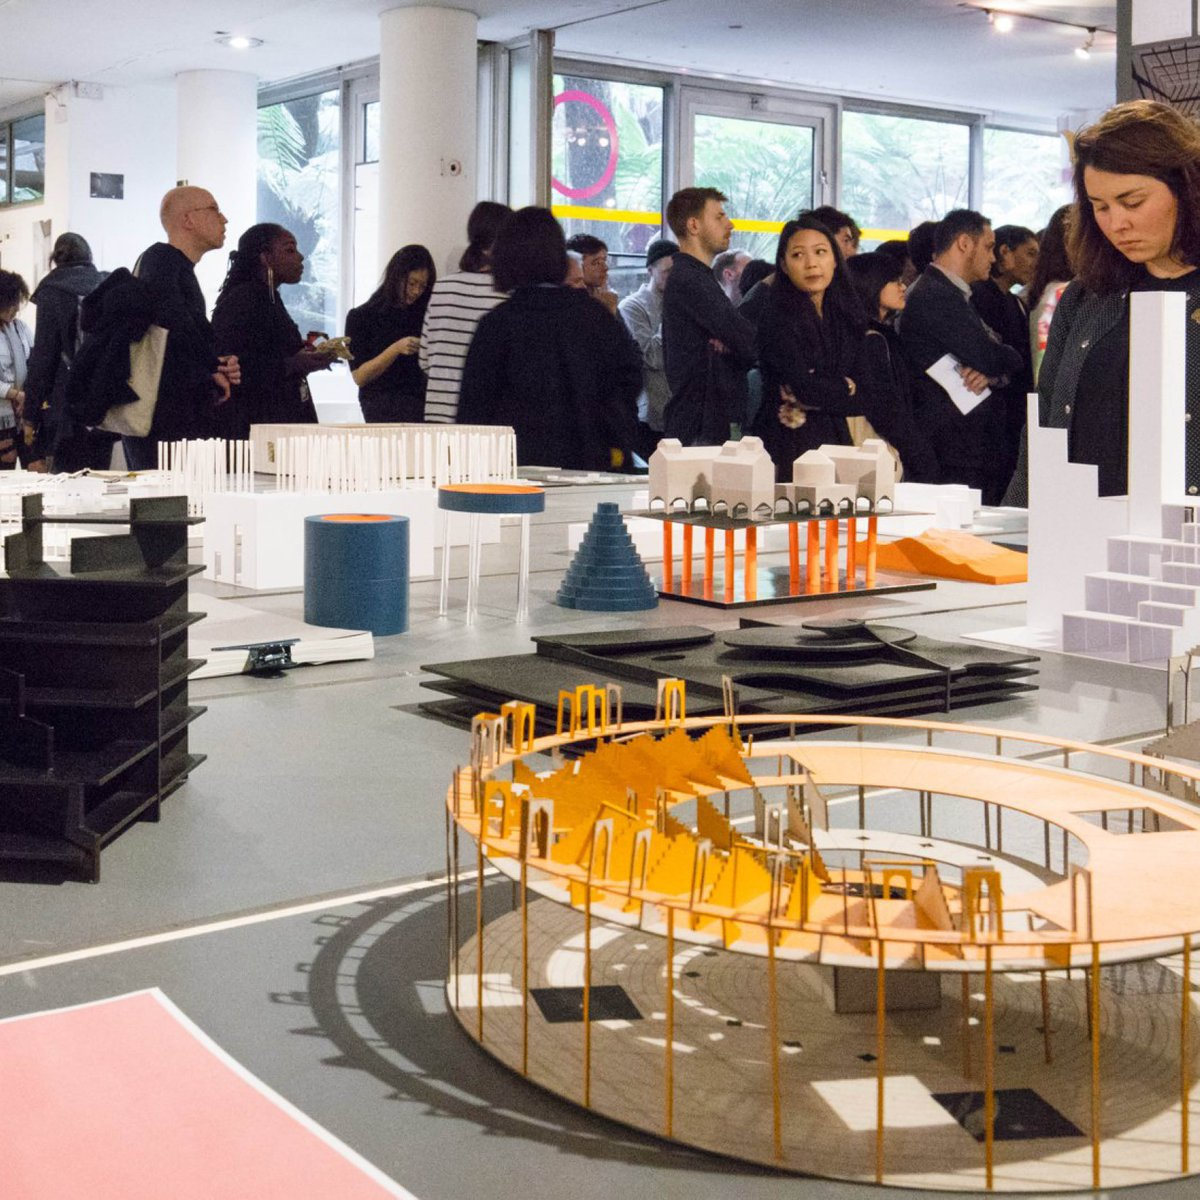 Royal College Of Art A Twitter Last Chance To Book Considering Applying For A Ma In Architecture Or Spatial Design Develop Your Skills And Generate Conceptual And Physical Products Of The Highest